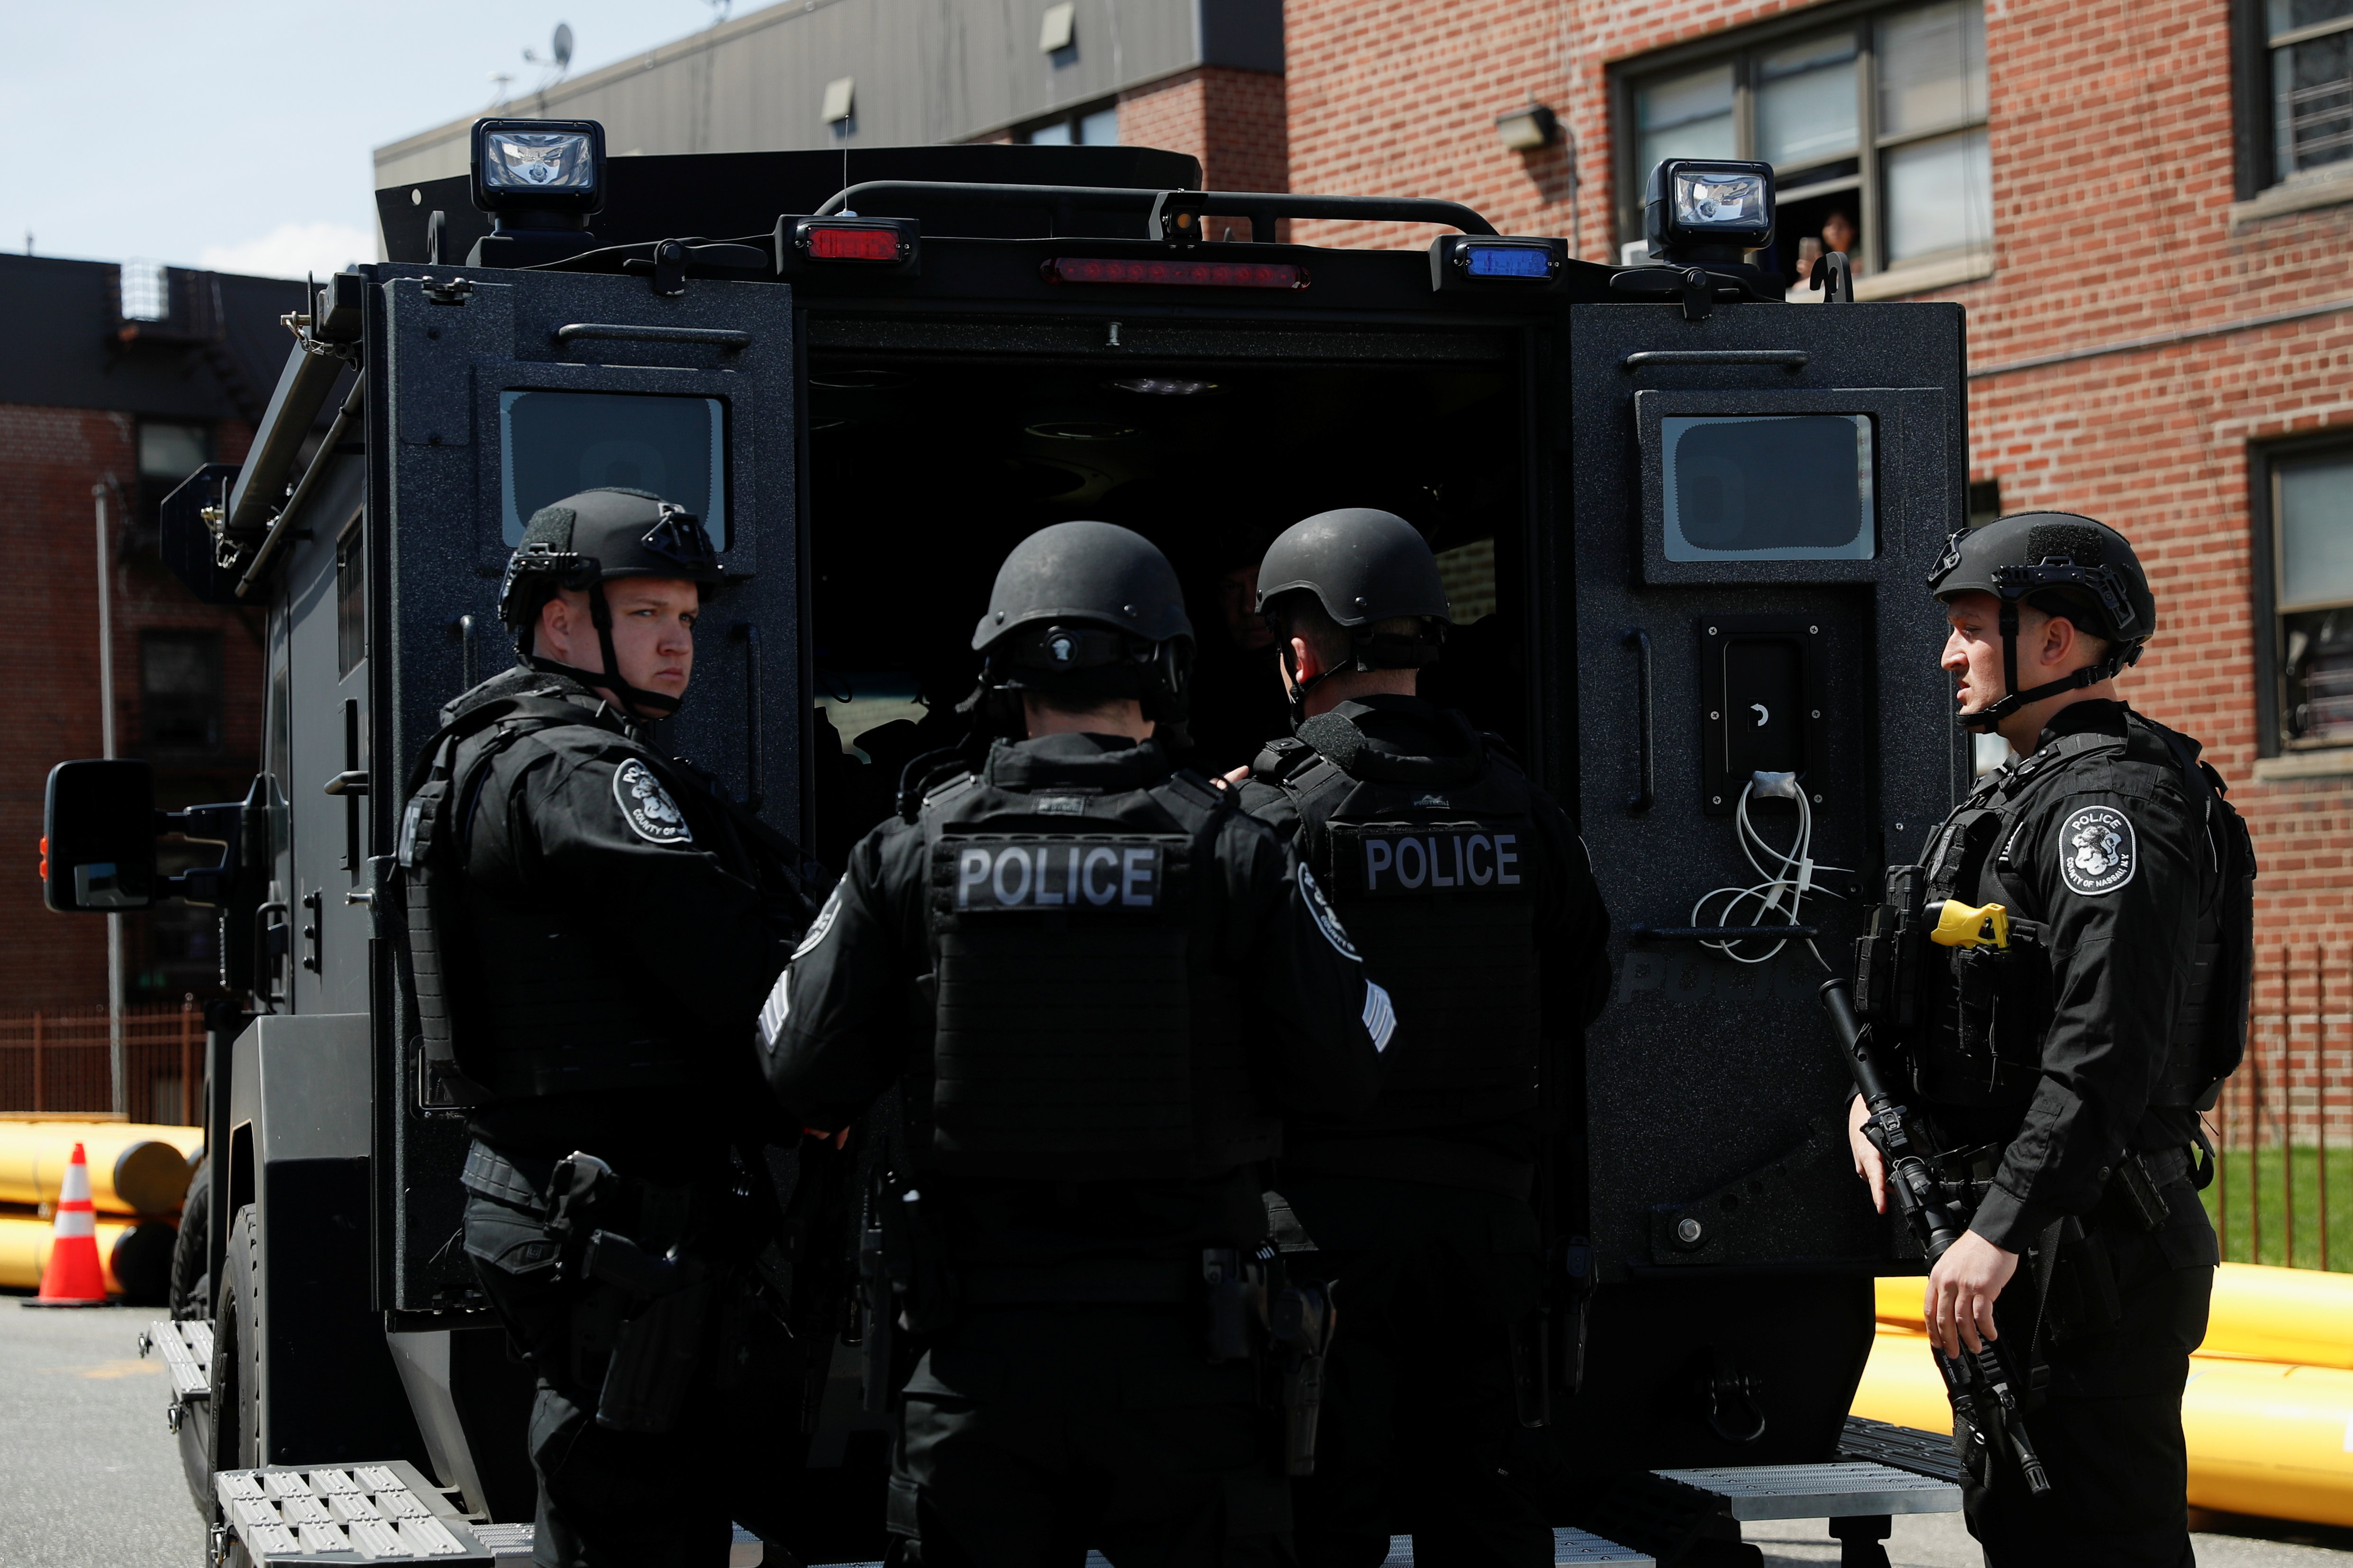 Law enforcement officers stand near the place where the shooter barricaded himself, after a shooting at a Stop and Shop grocery store, in Hempstead, New York, U.S., April 20, 2021.  REUTERS/Shannon Stapleton